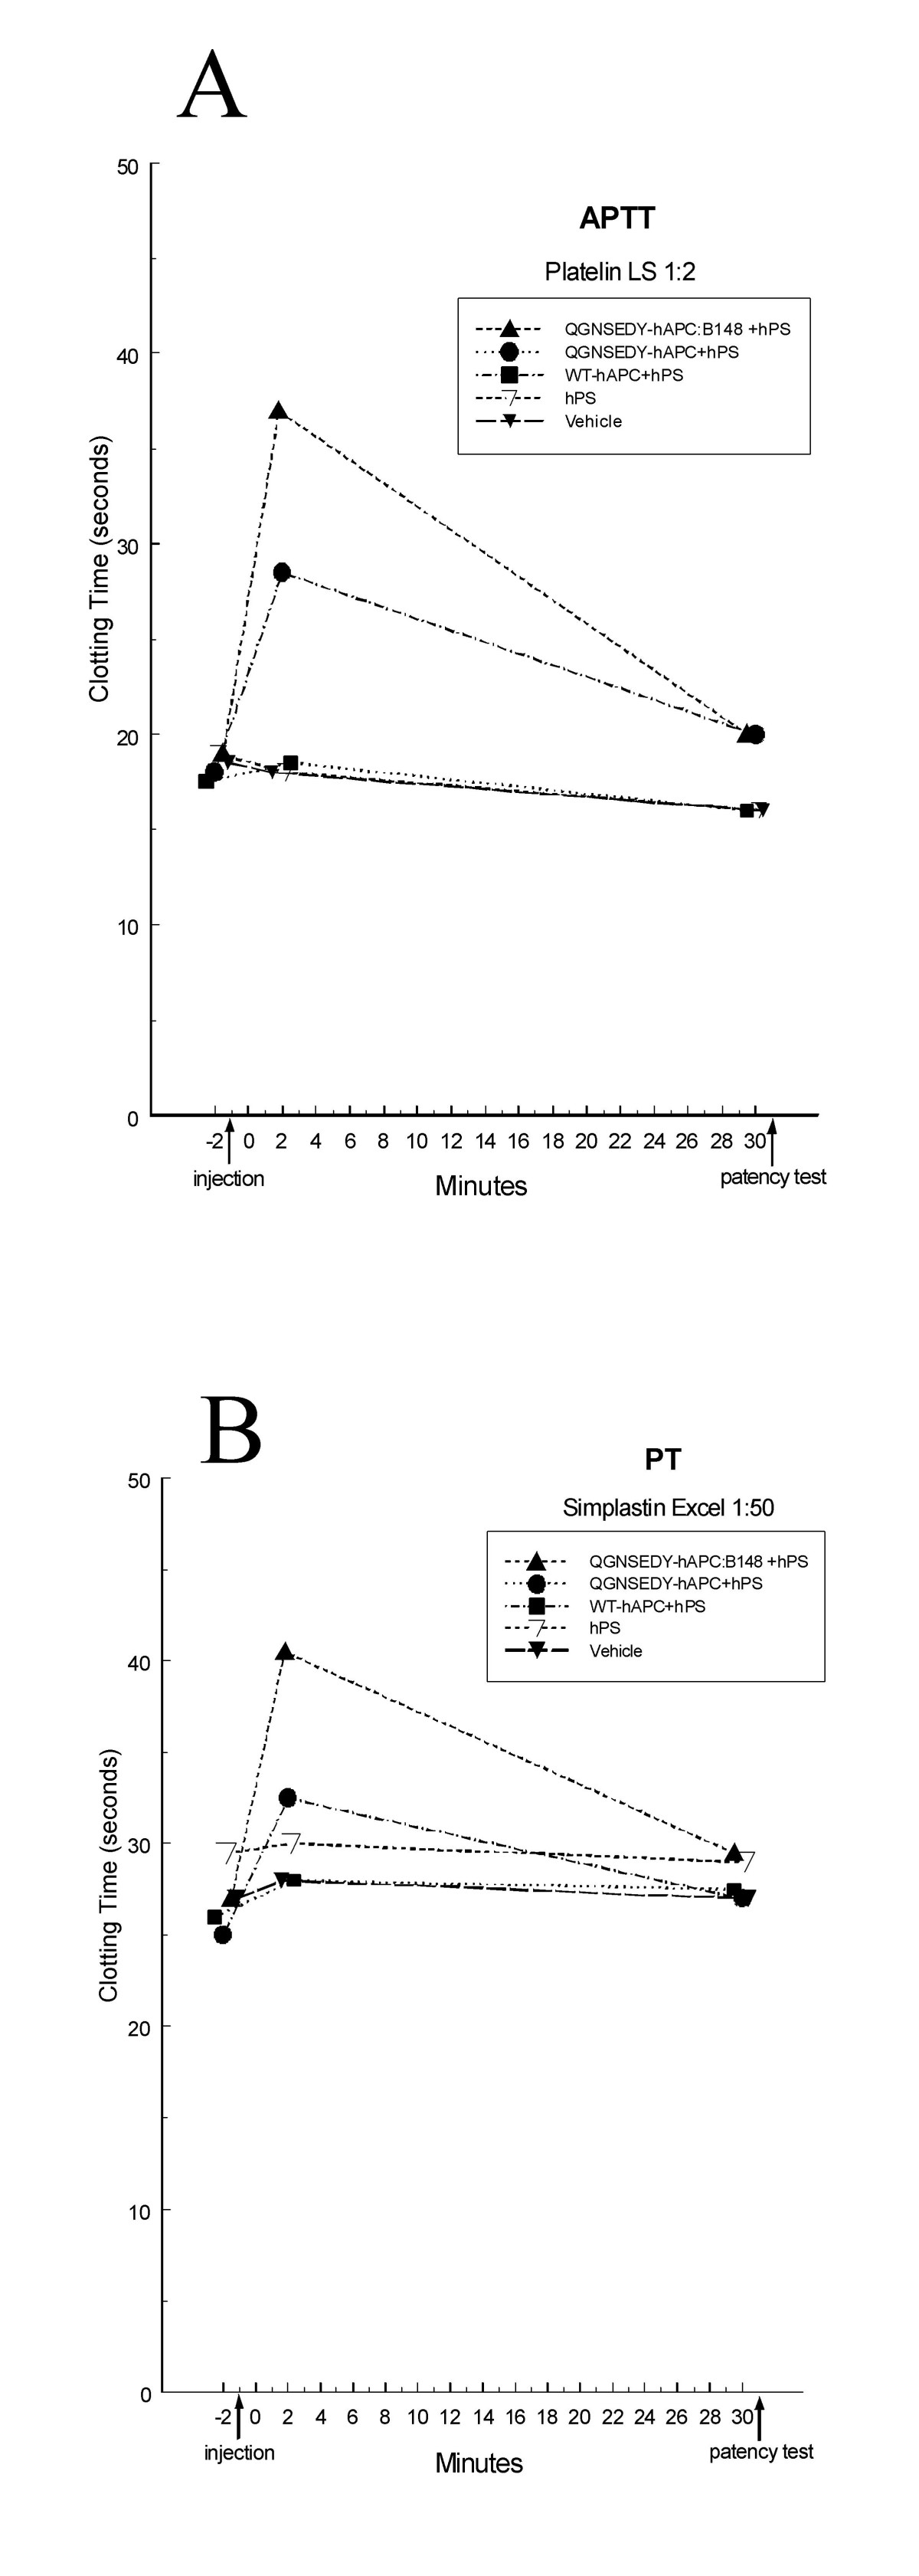 https://static-content.springer.com/image/art%3A10.1186%2F1477-9560-6-16/MediaObjects/12959_2008_Article_98_Fig5_HTML.jpg